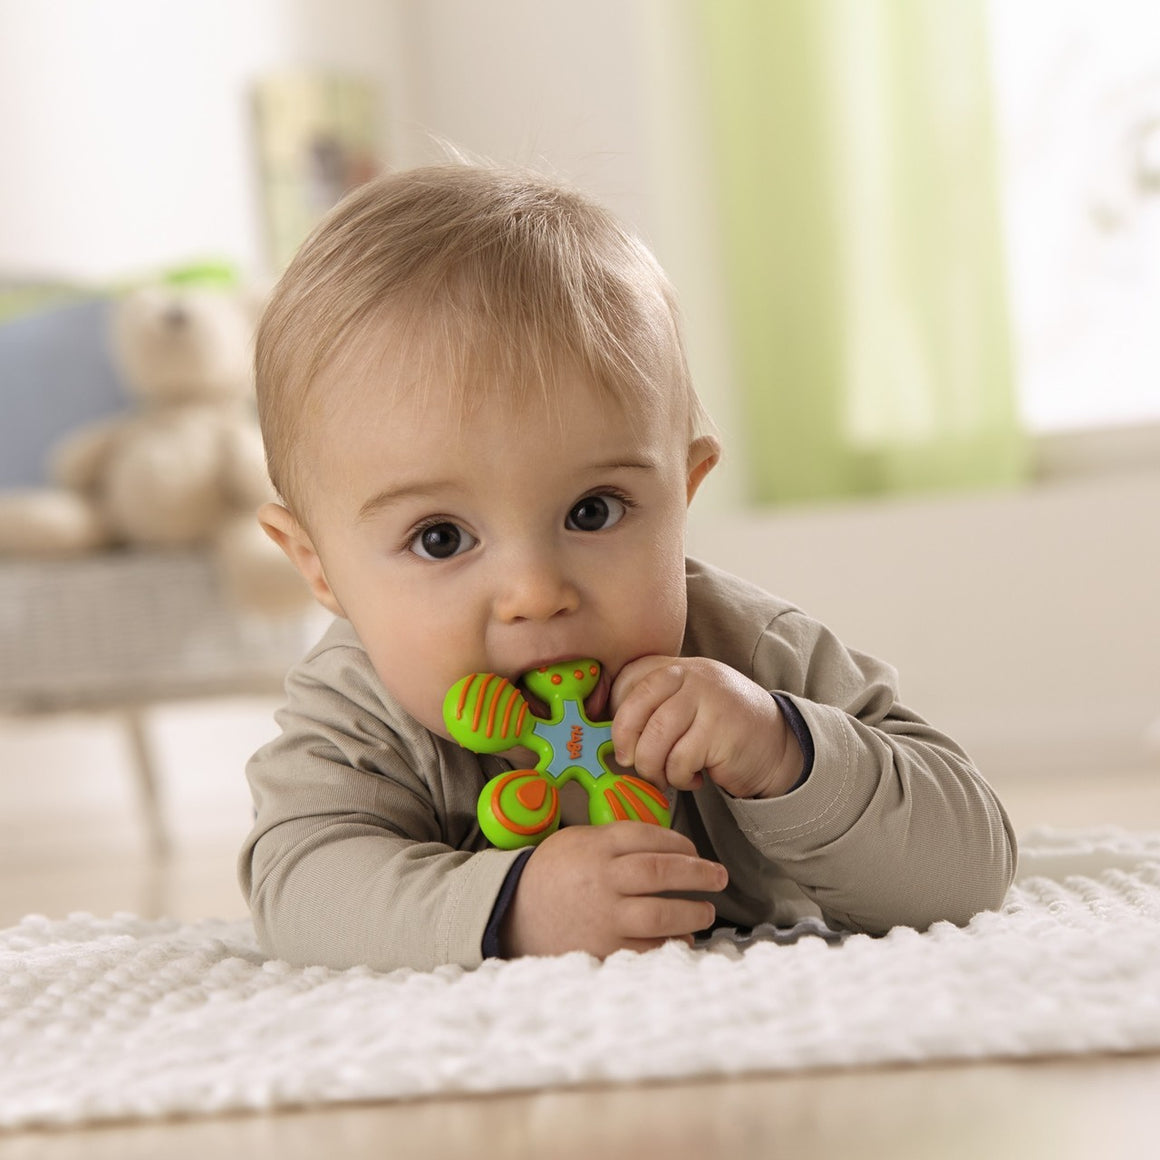 "HABA clutching toy star silicone teether measures 2.75"" diameter in light blue, lime green and orange"